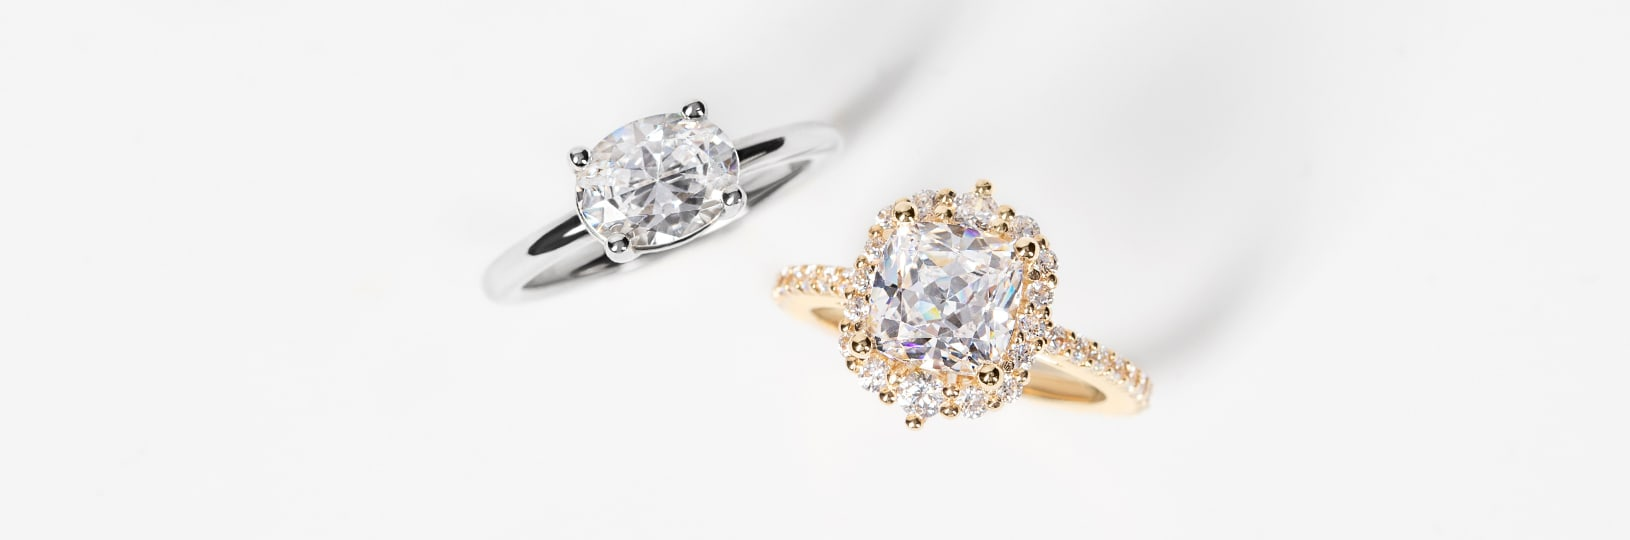 A solitaire and a halo engagement ring